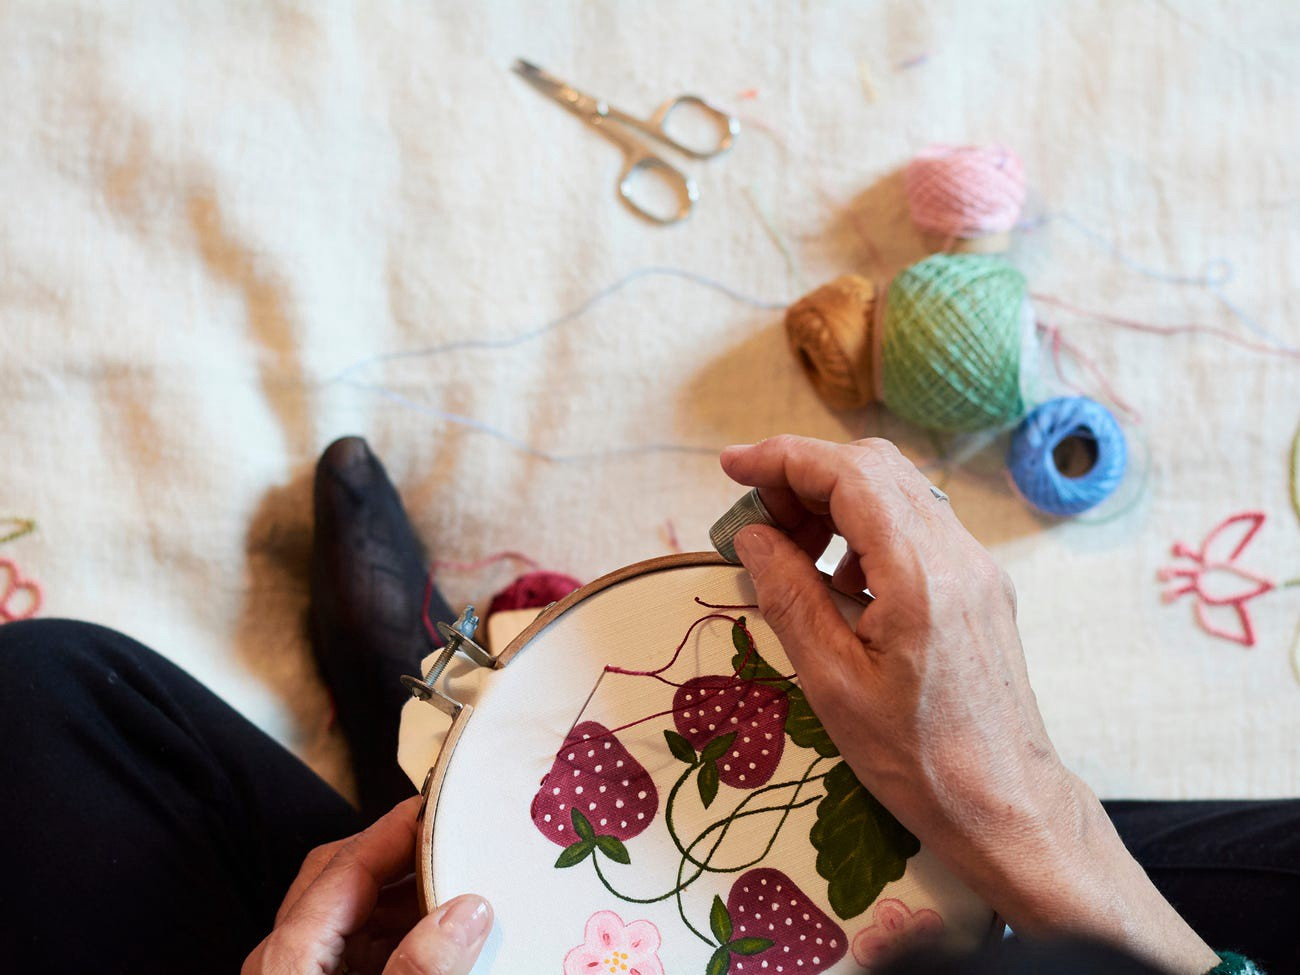 A hand-embroidered design.